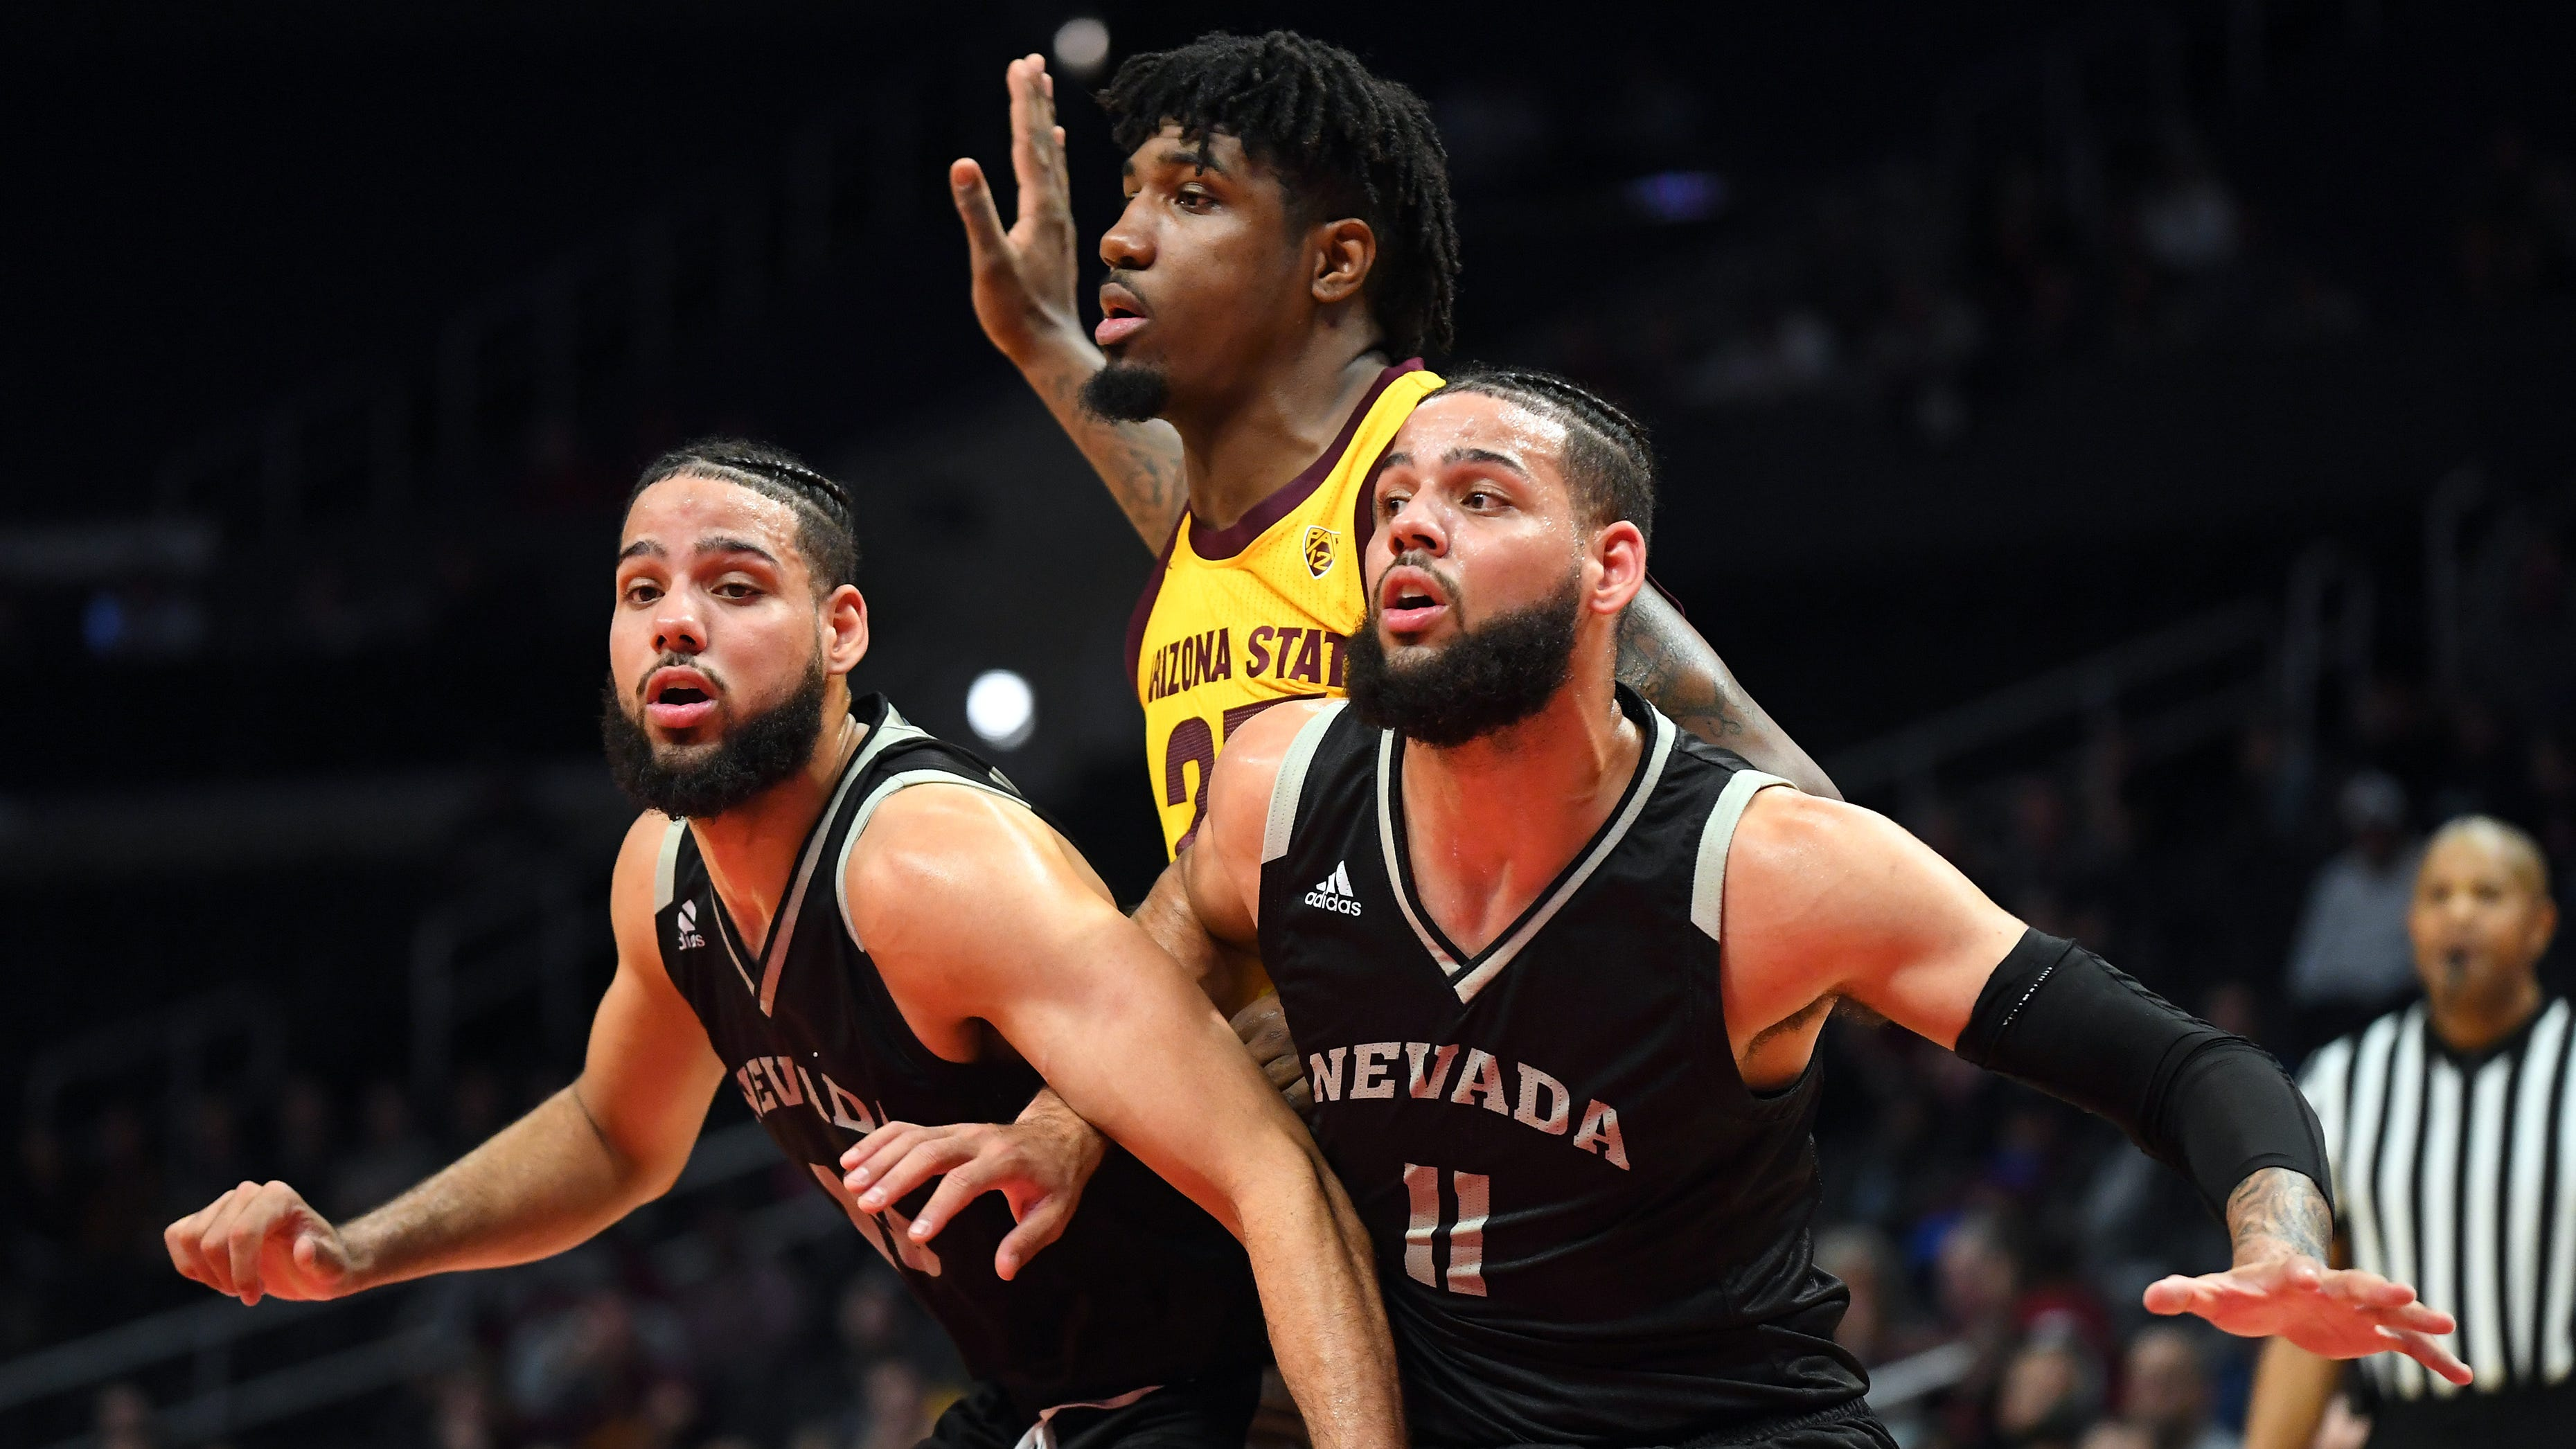 Dec 7, 2018; Los Angeles, CA, USA;Nevada Wolf Pack forward Cody Martin (11) and forward Caleb Martin (10) box out Arizona State Sun Devils forward Romello White (23) under the basket in the first half of the game at Staples Center. Mandatory Credit: Jayne Kamin-Oncea-USA TODAY Sports